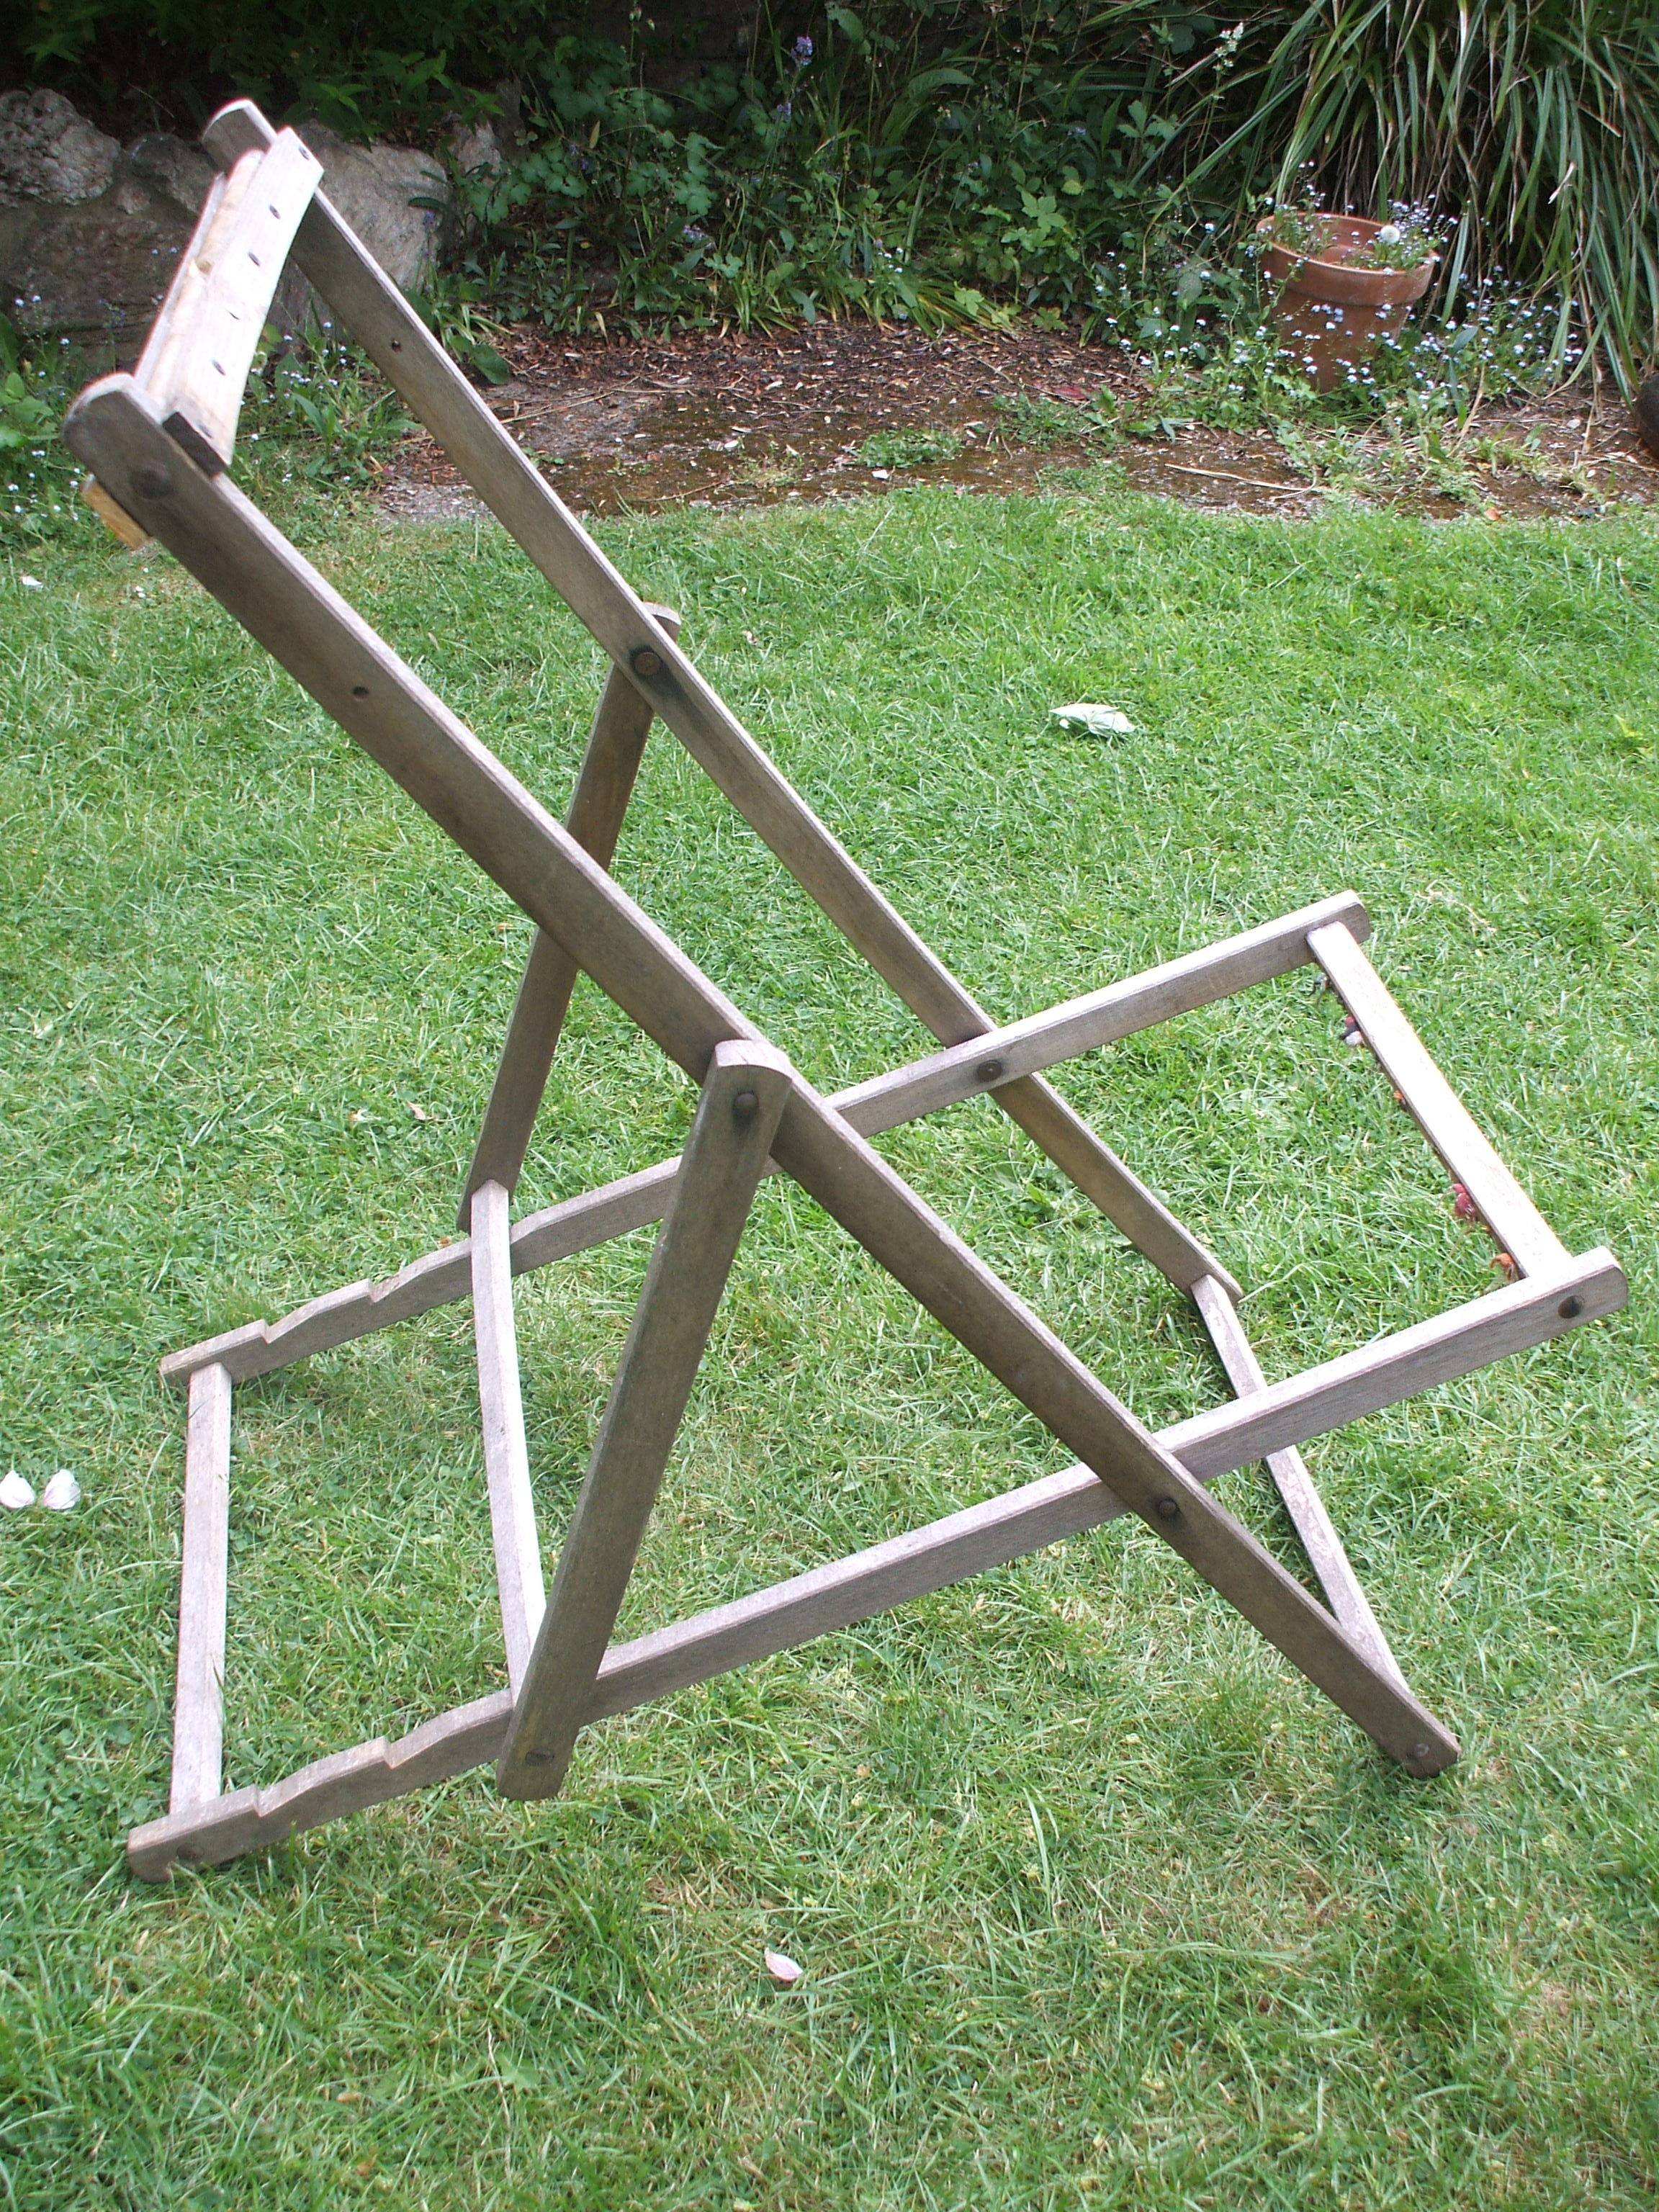 how to make a wooden beach chair wing recliner leather new onto the old canvas deckchair seat diannajessie here follows quick